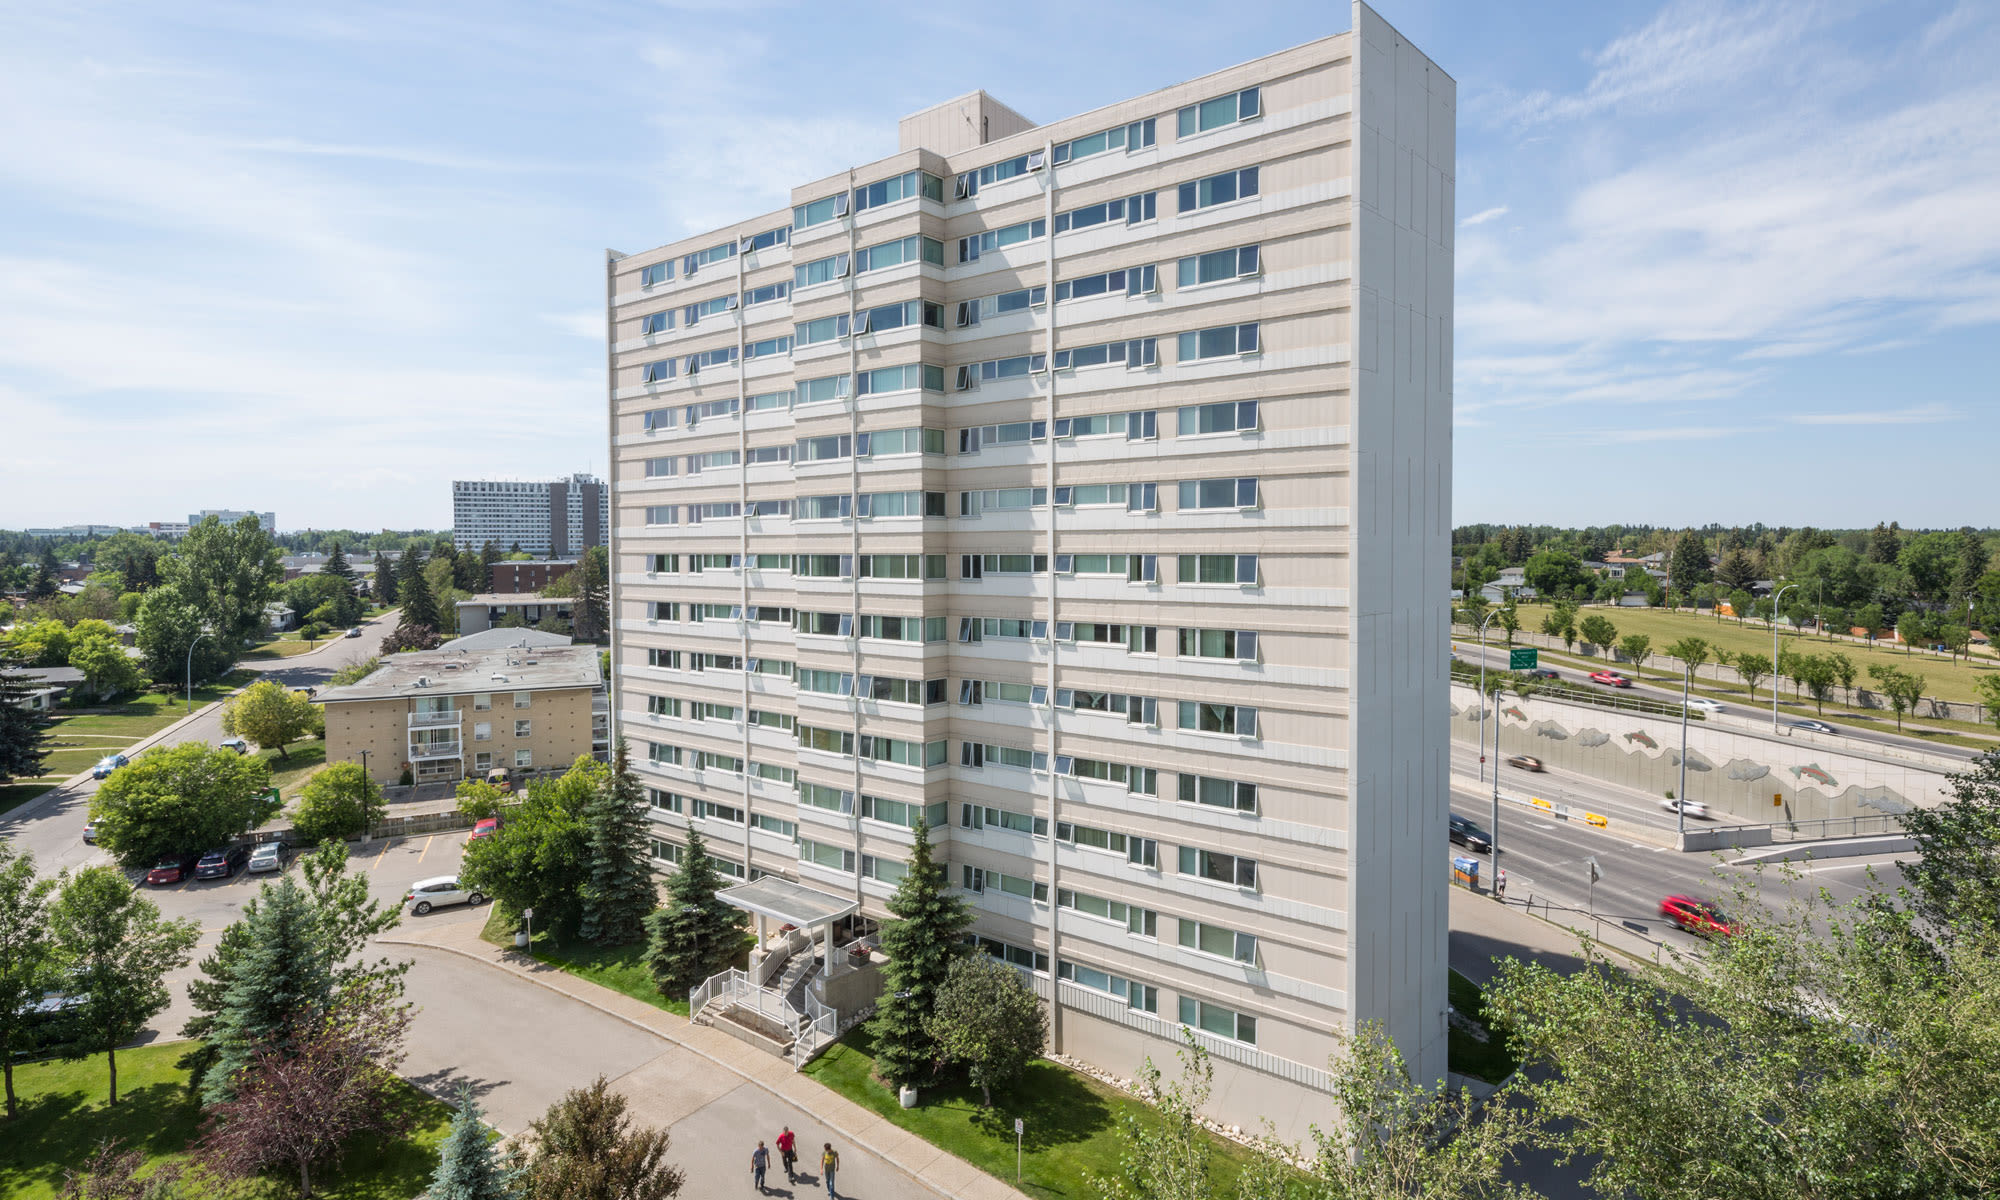 Aerial view of Glenmore Heights in Calgary, AB